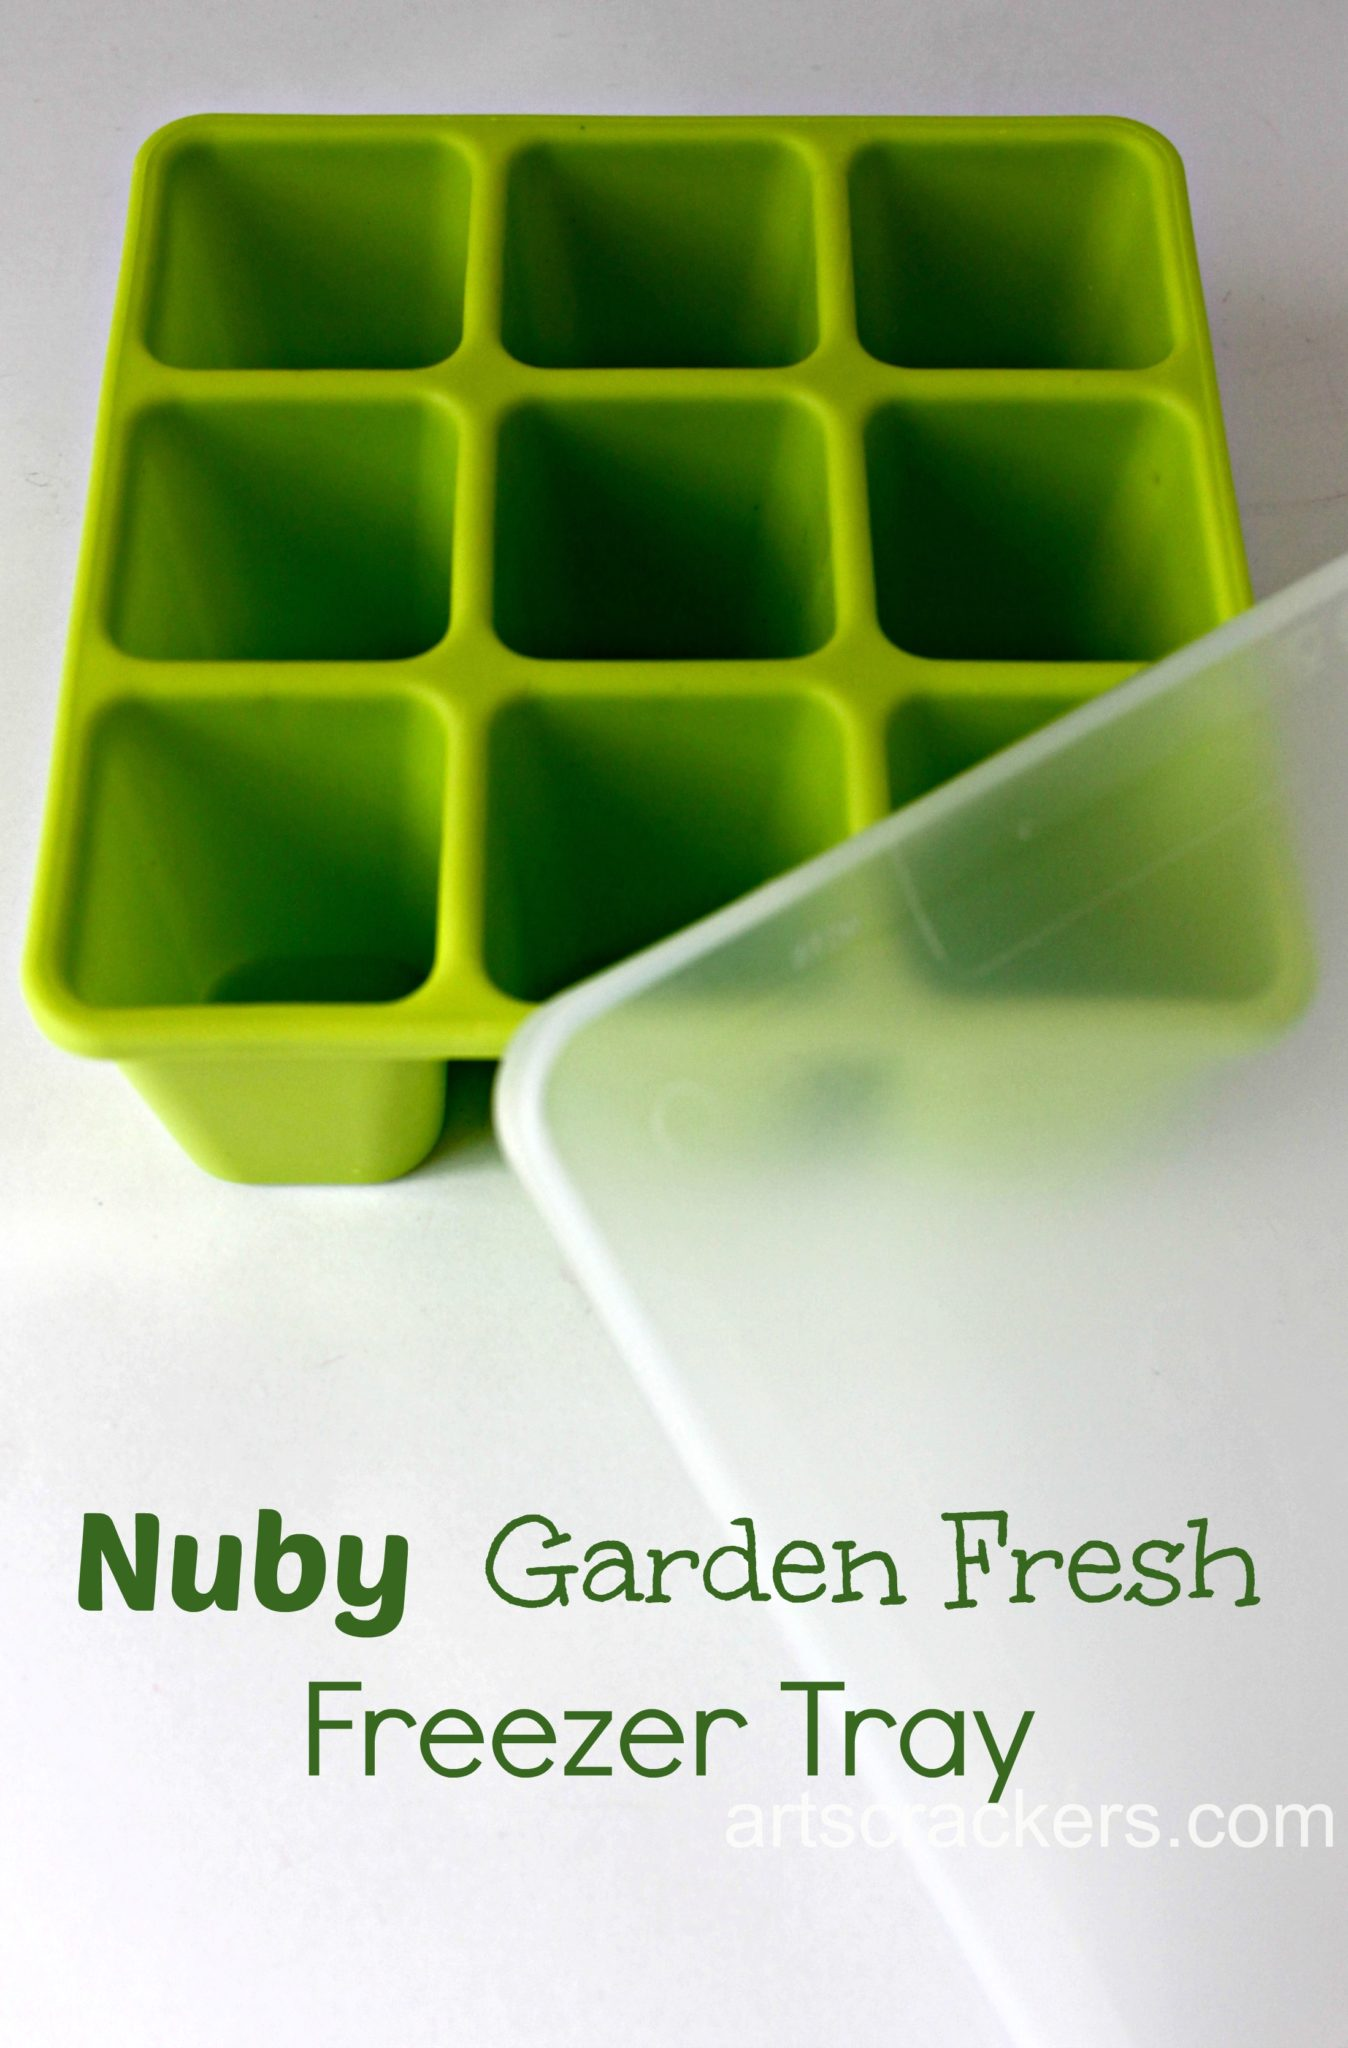 Nuby Garden Fresh Food Freezer Tray. Click the picture to read the review.